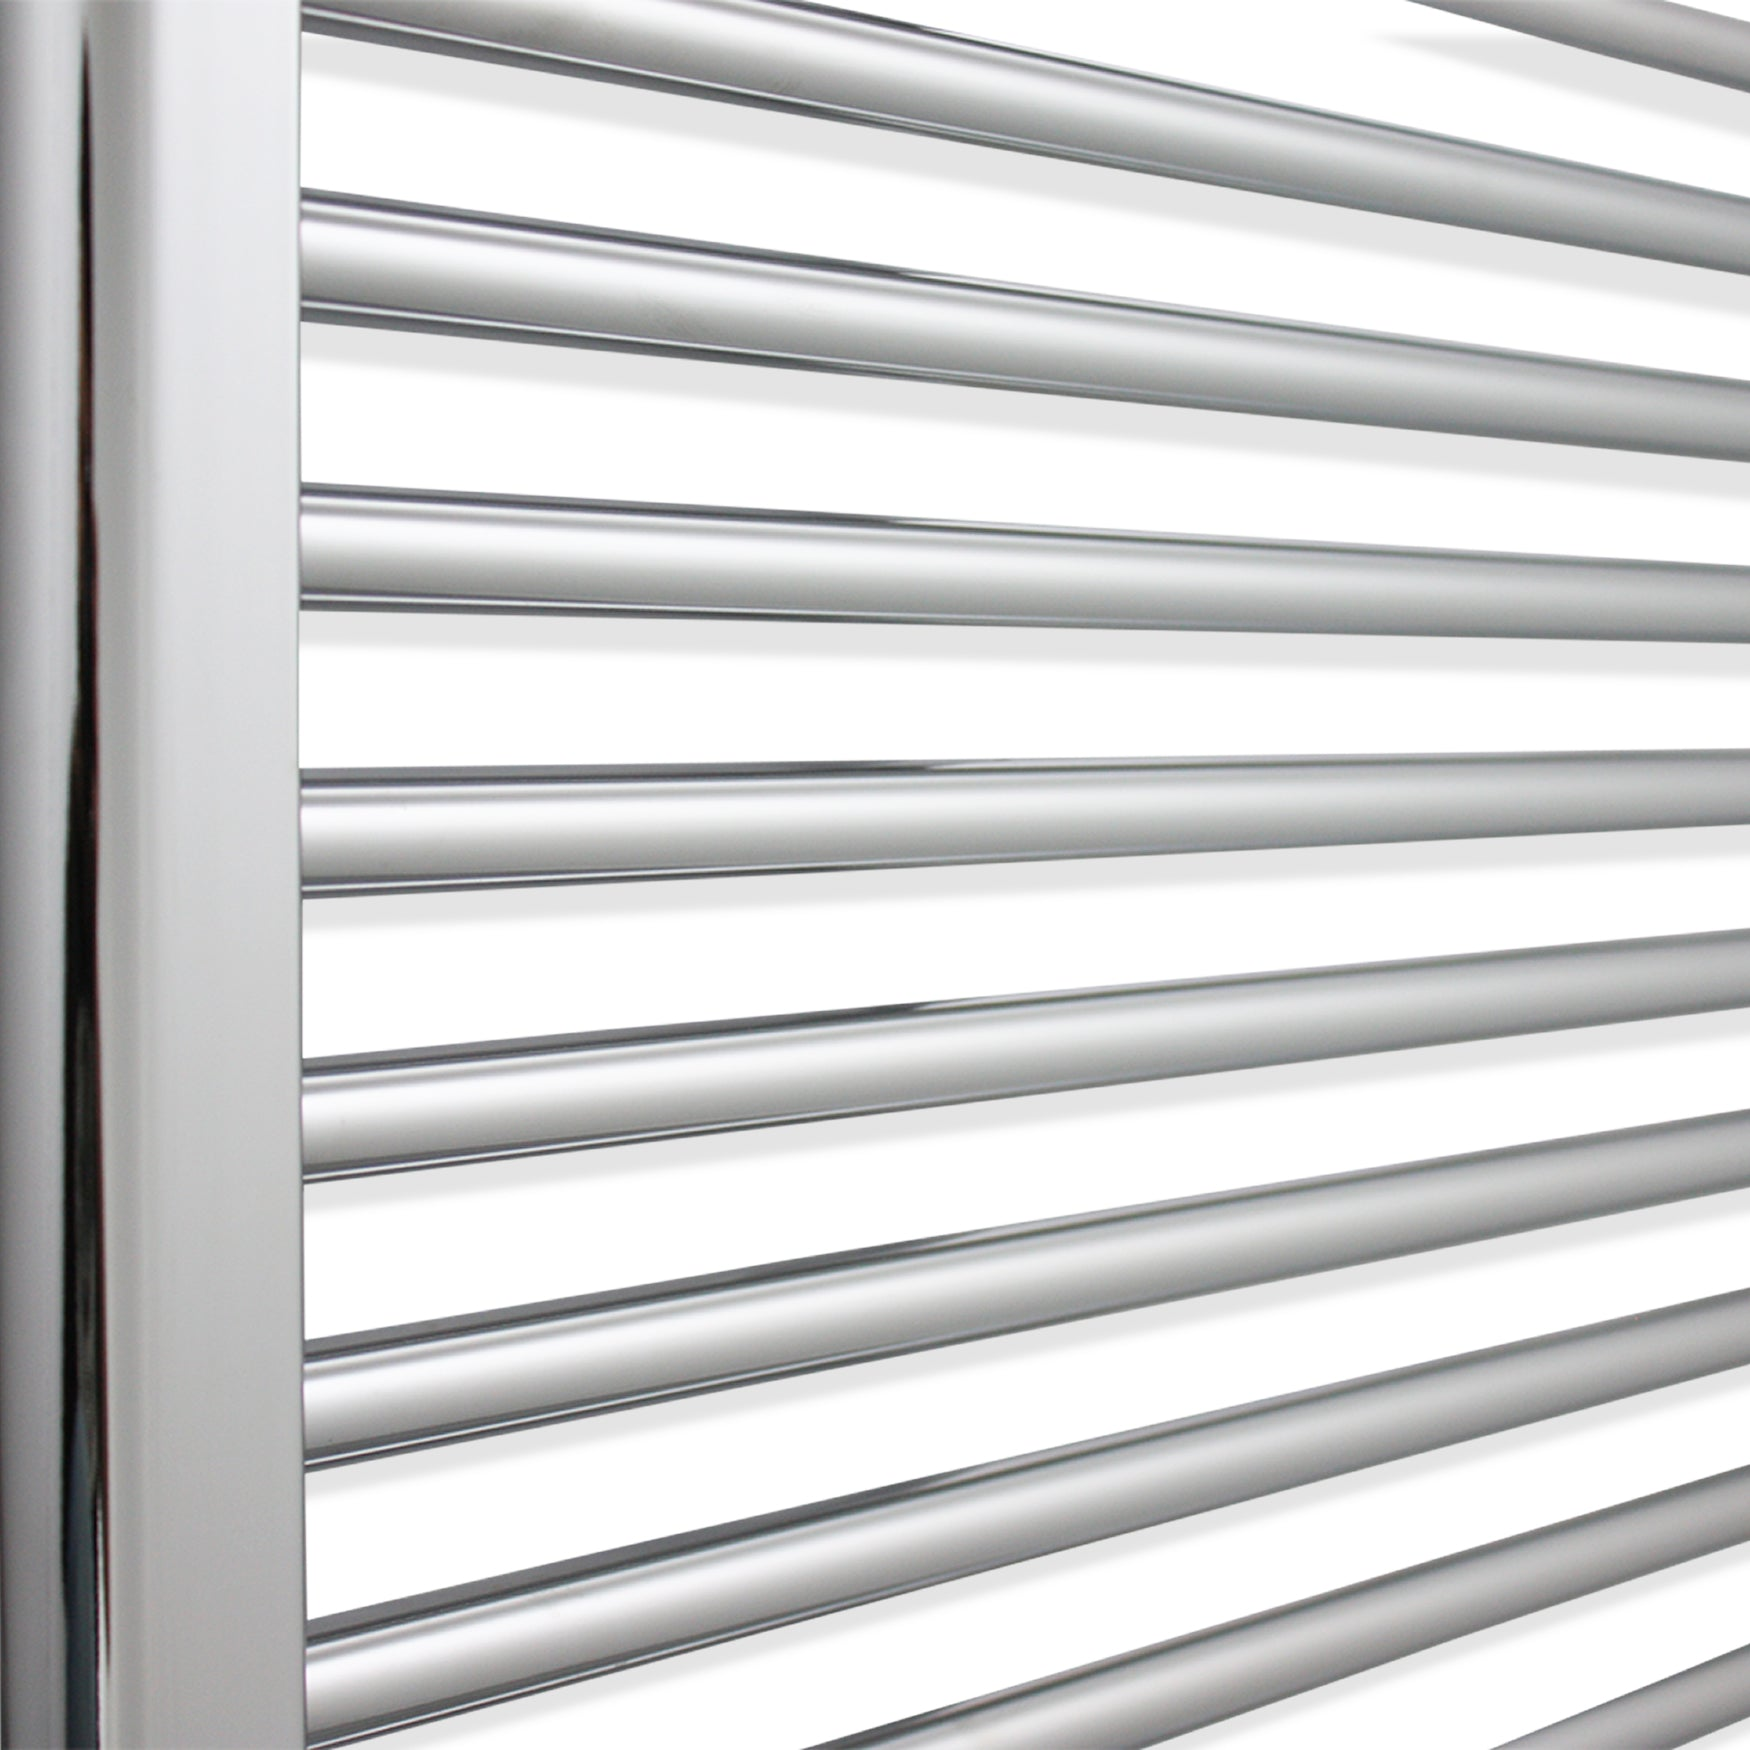 950mm Wide 400mm High Flat Chrome Heated Towel Rail Radiator HTR